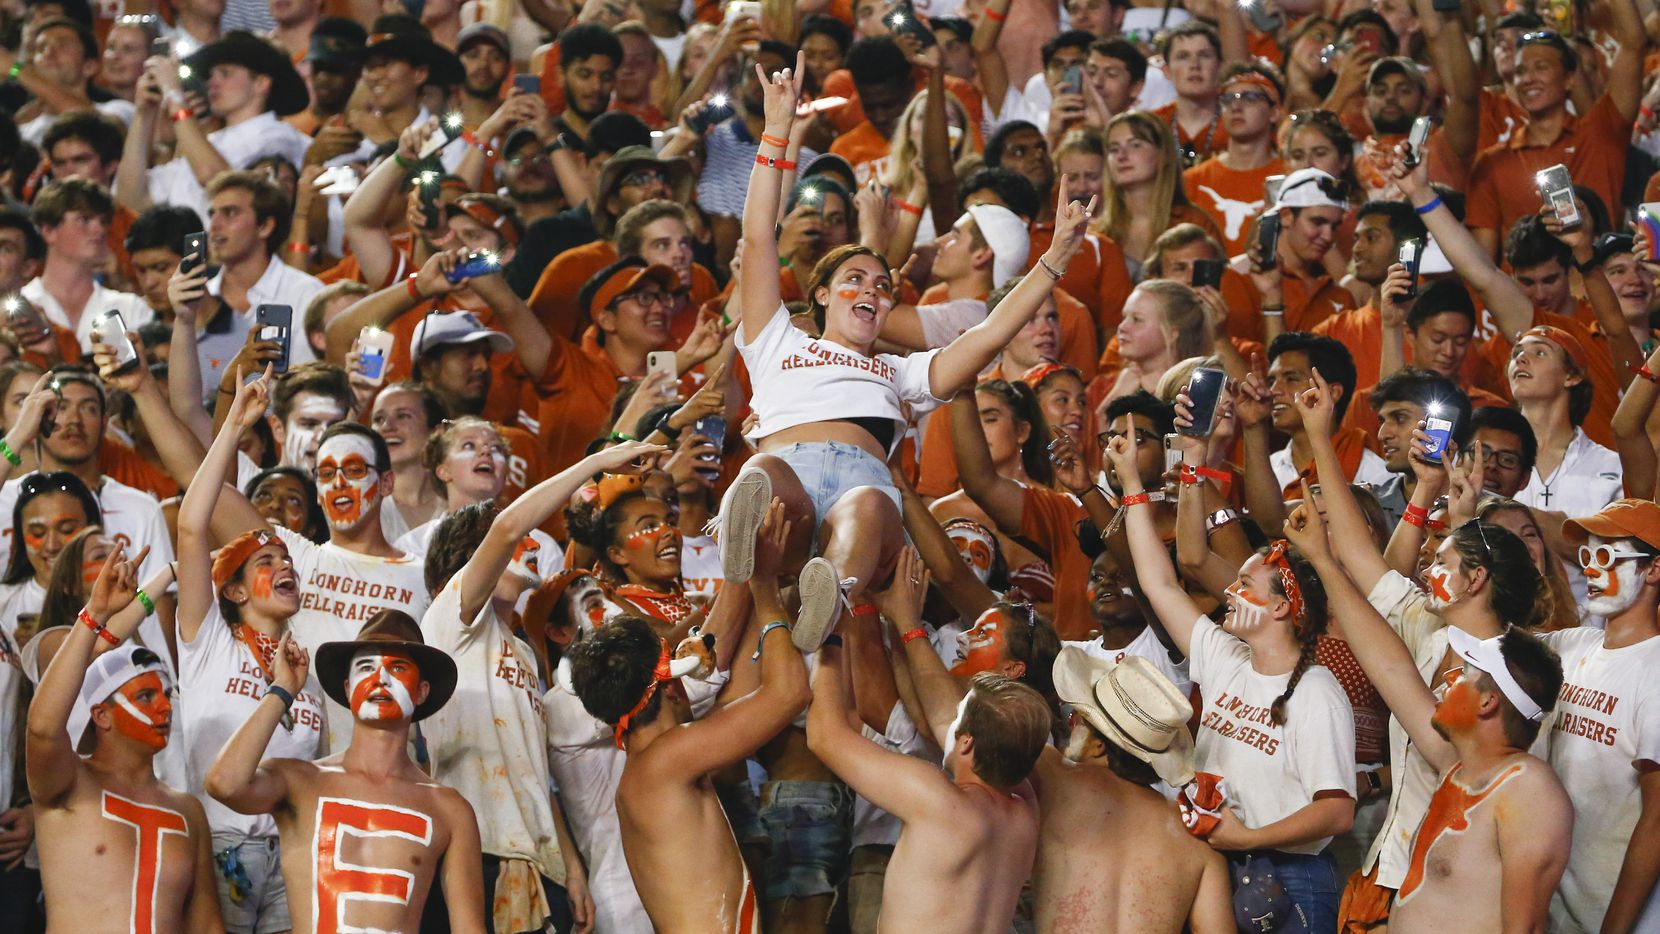 A student fan is lifted into the air during the third quarter of a college football game between the University of Texas and Louisiana State University on Saturday, Sept. 7, 2019 at Darrell Royal Memorial Stadium in Austin, Texas. (Ryan Michalesko/The Dallas Morning News)